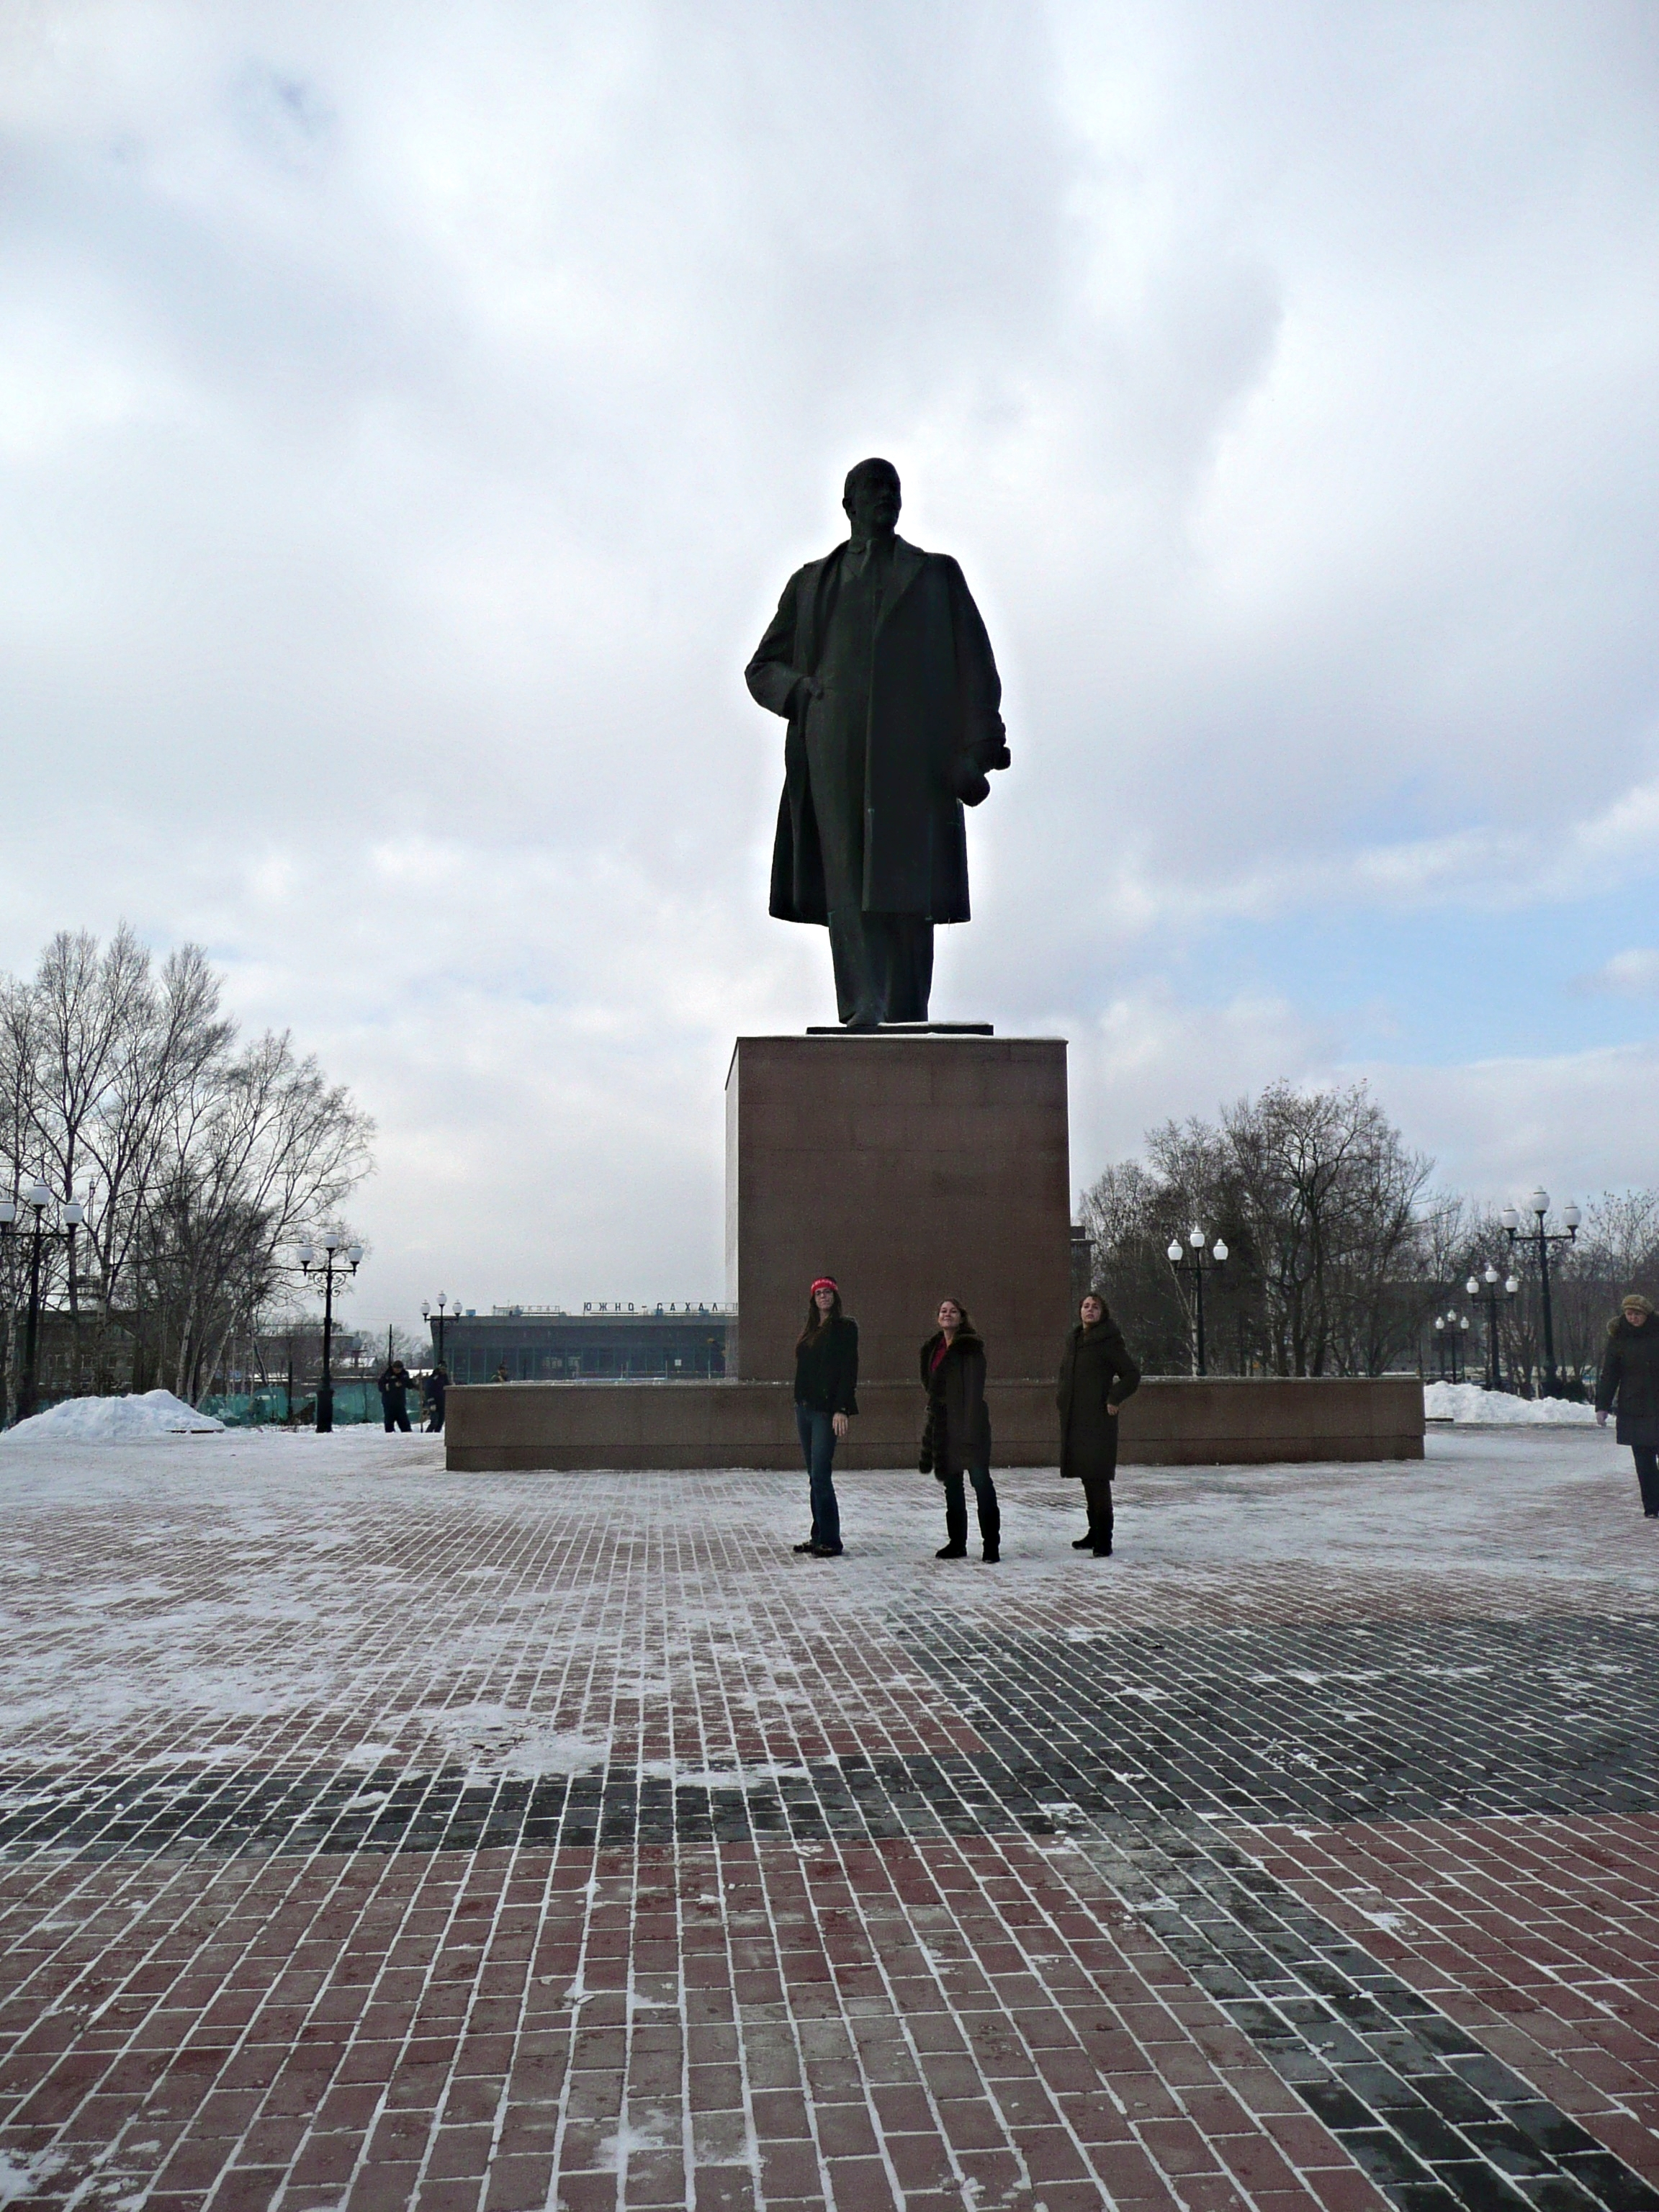 Statue of Lenin in Central Yuzhno Sakhalinsk